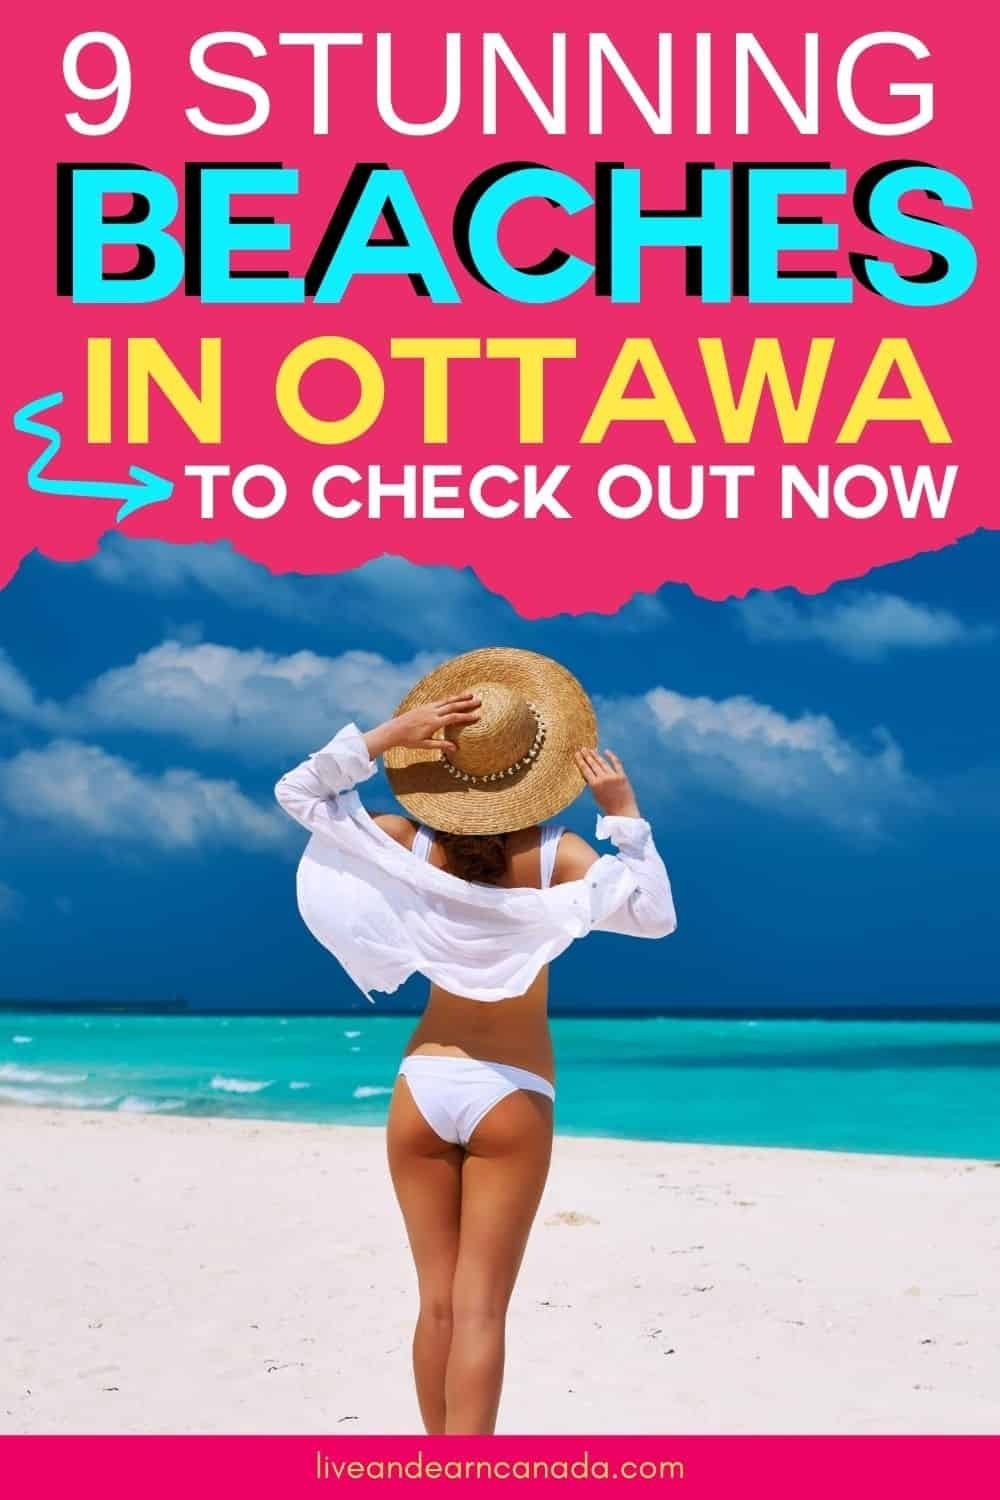 Whether you are looking for the best beaches in Ontario or the best beaches in Ottawa, we have you covered. Here is a list of 9 Beaches In And Around Ottawa You Need To Relax On This Summer! #ottawabeach #beachinottawa #beachlife